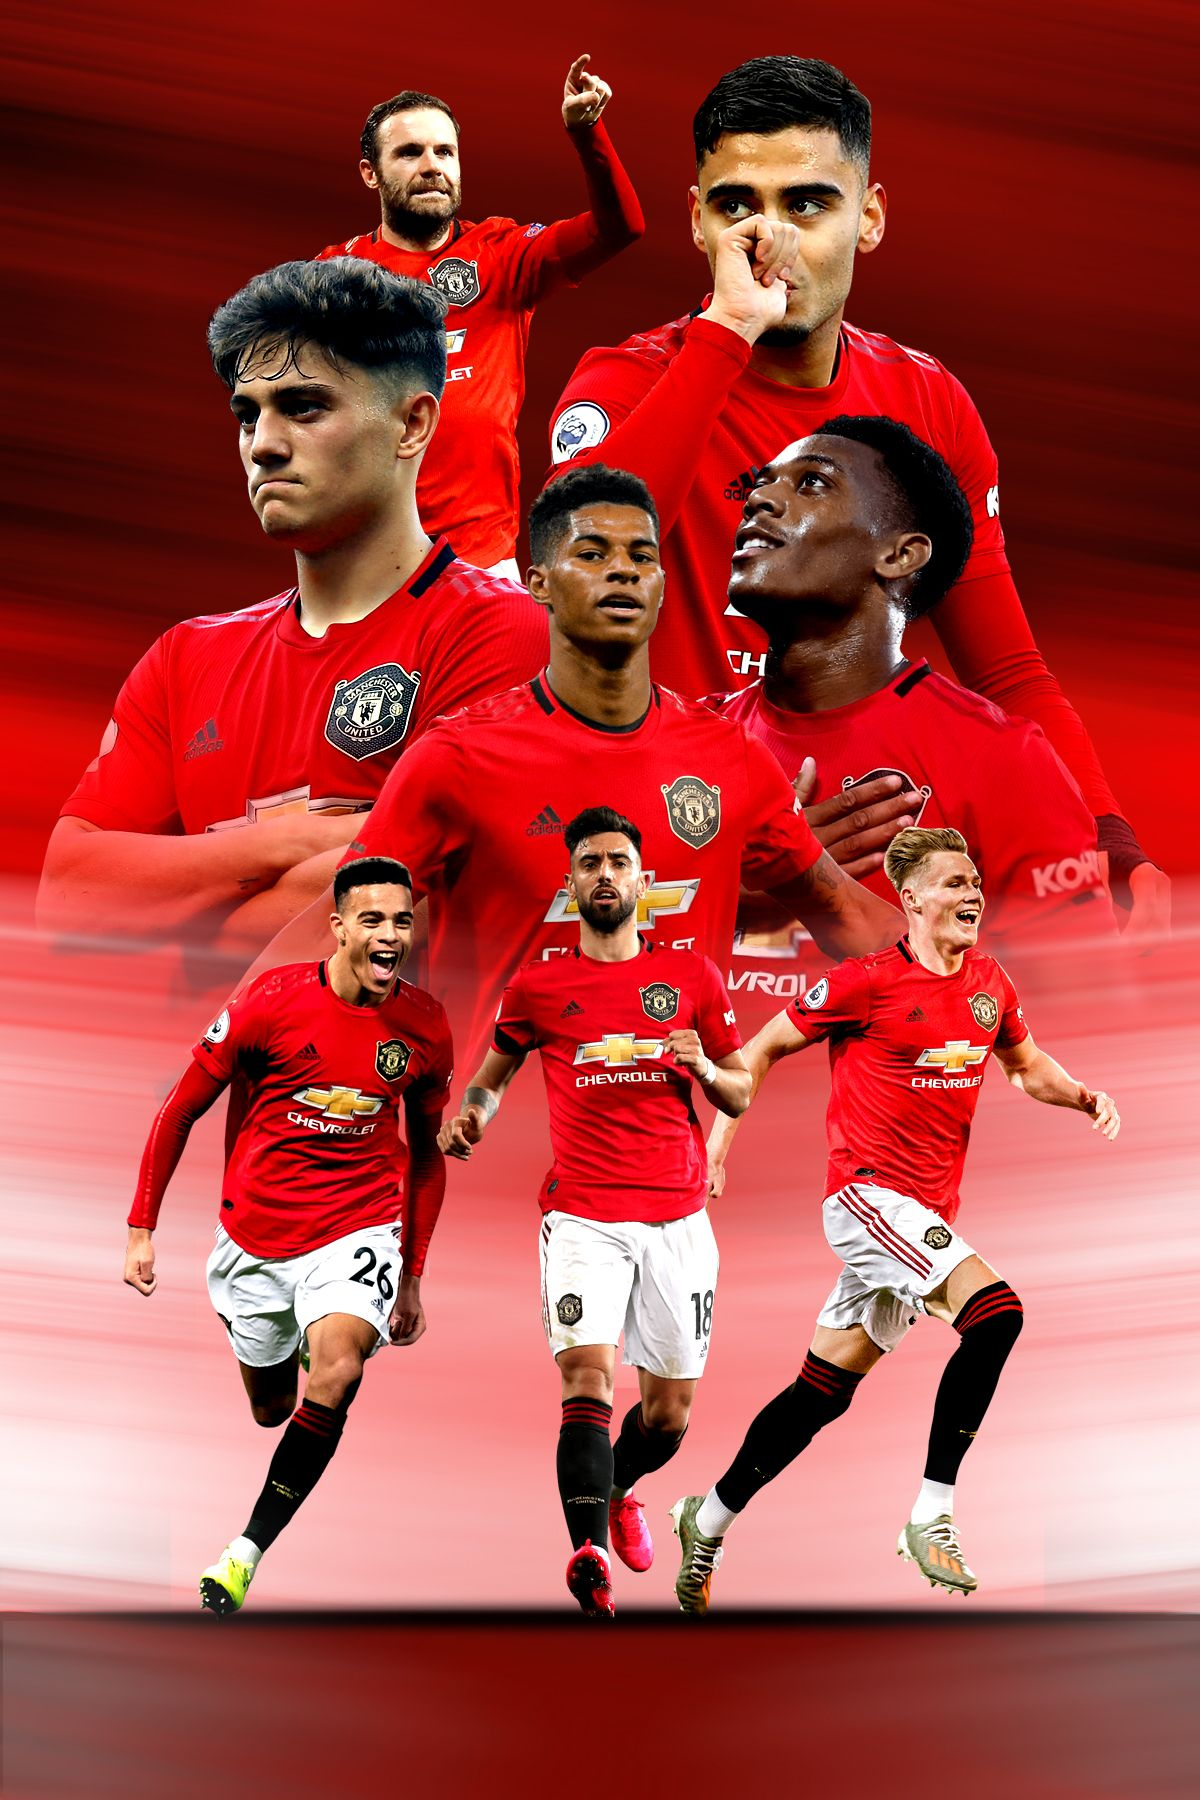 Download Manchester United Background 2020